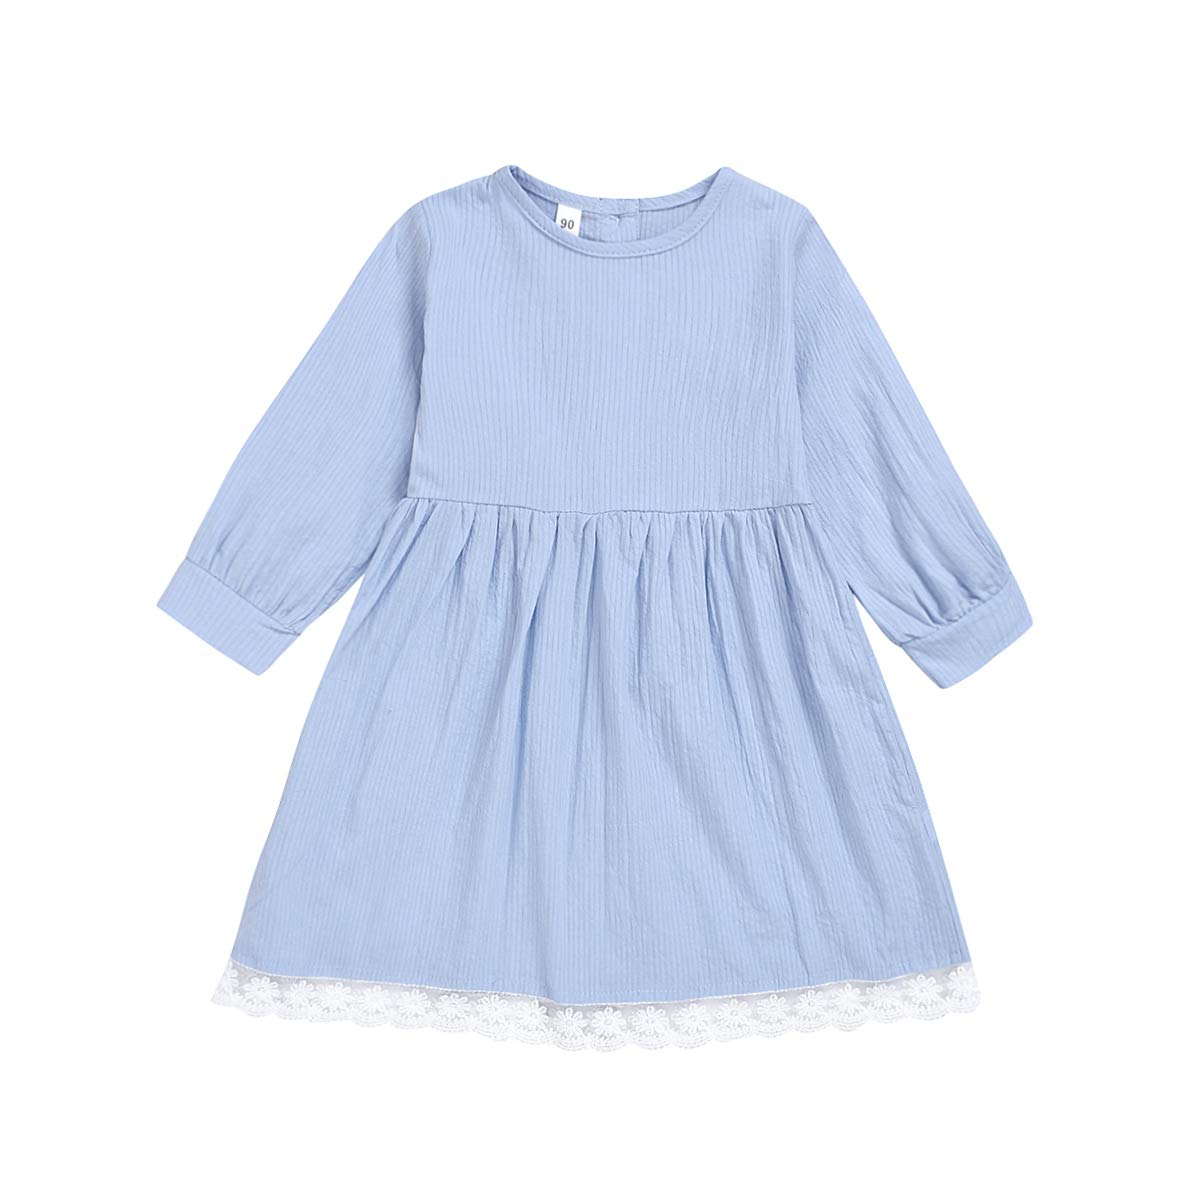 Toddler Kids Baby Girl Casual Dress Solid Color Long Sleeve Lace Spring Dress Outfits